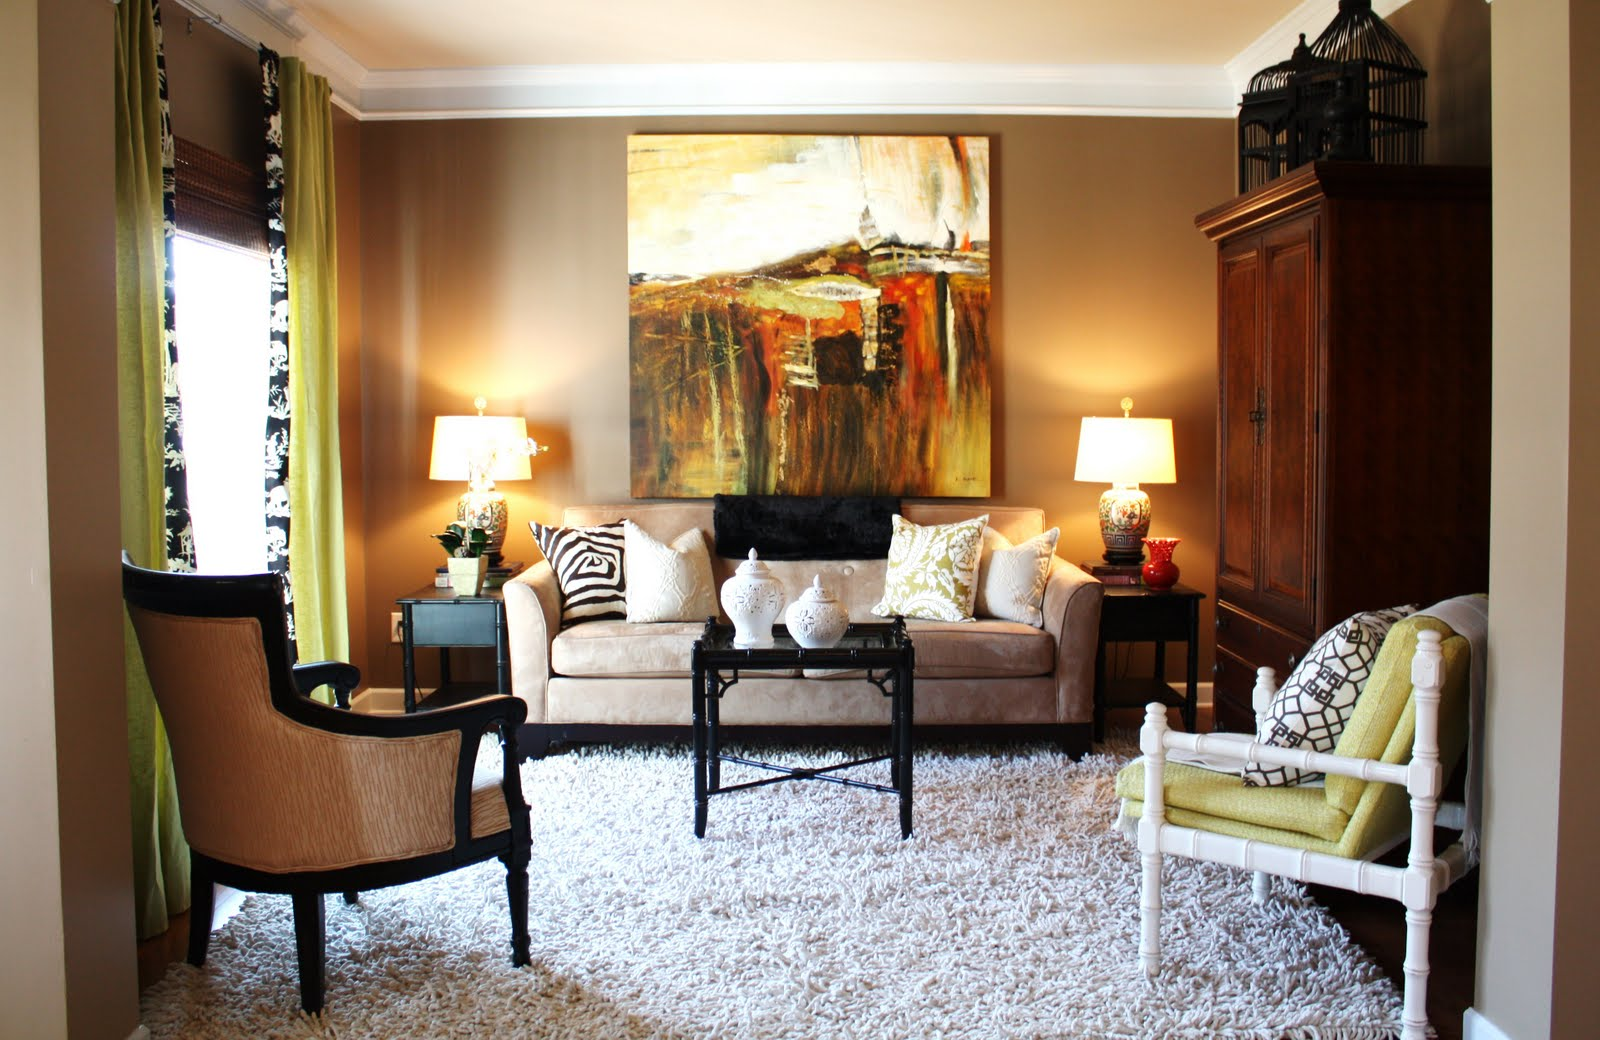 House Tour: Emily A. Clark | Taylor Made Home: The Blog